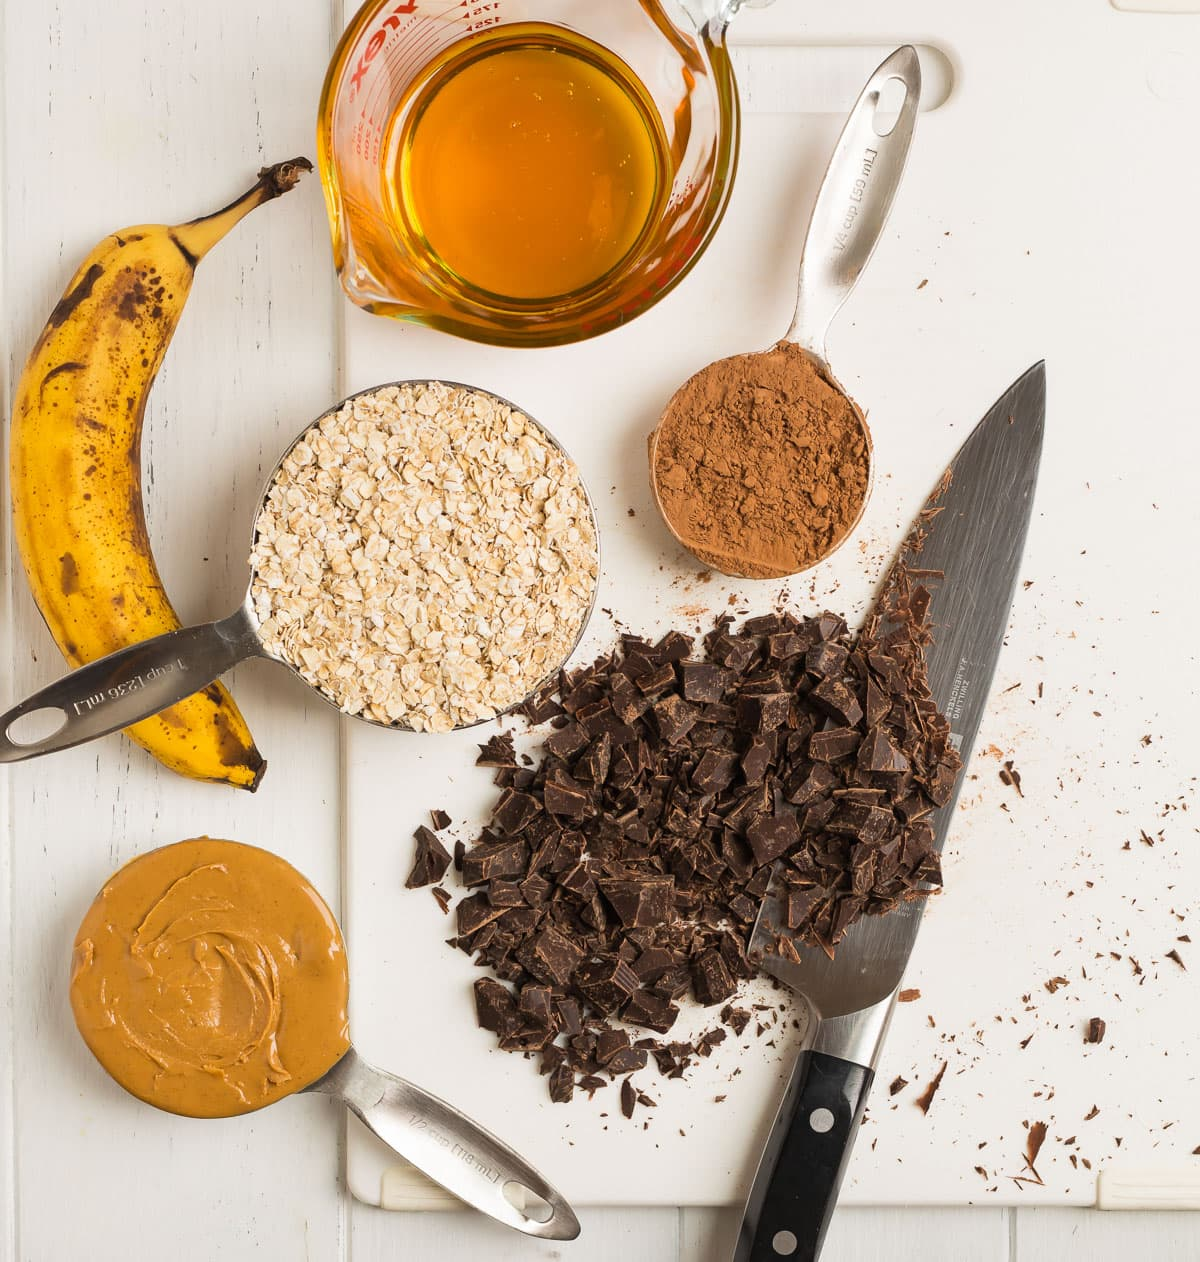 ingredients for making no bake cookies including oatmeal, honey, banana, and chocolate